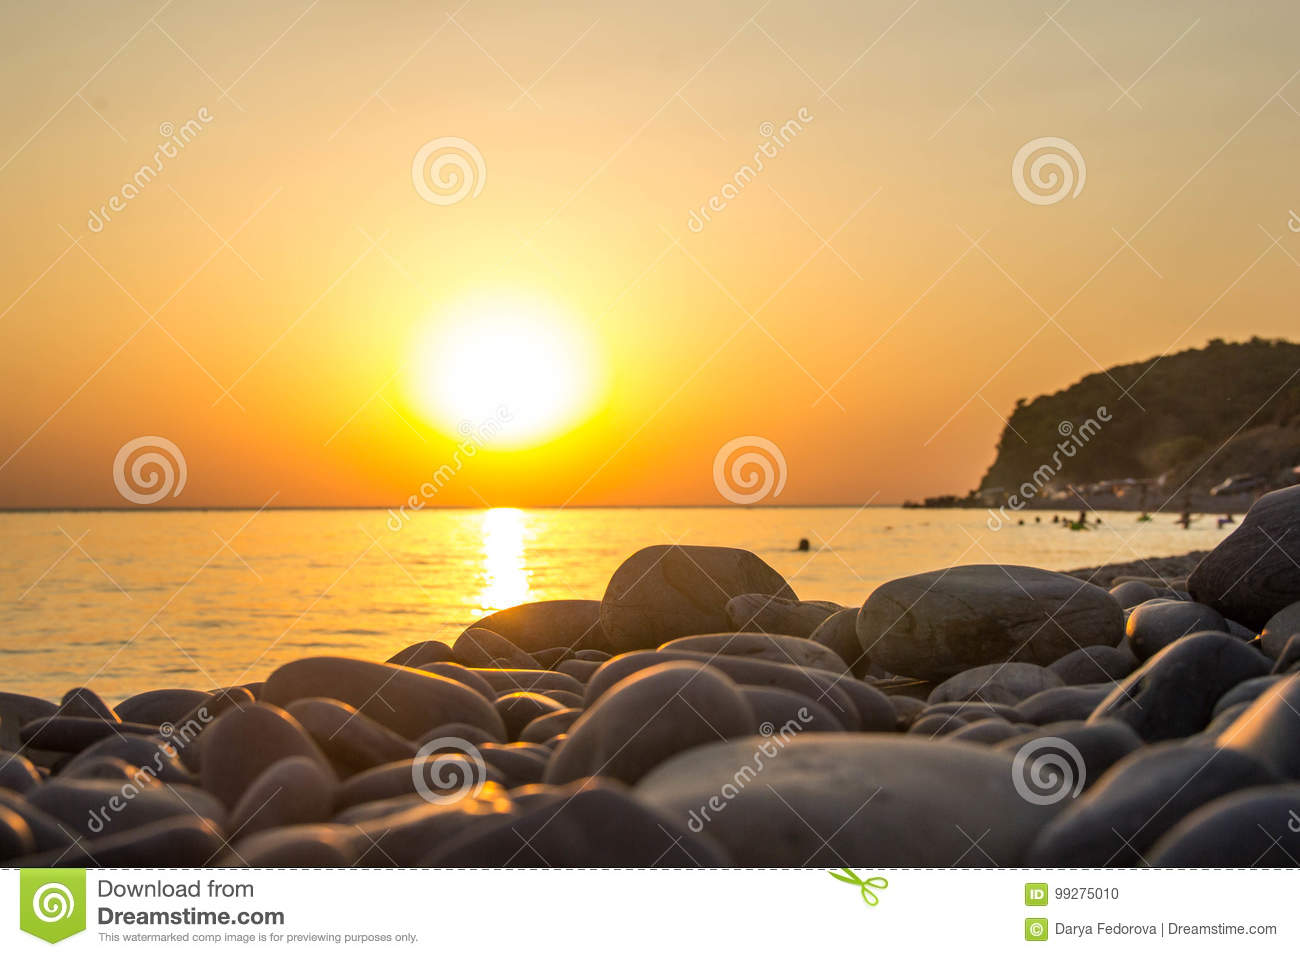 Beautiful blazing sunset landscape at black sea and orange sky above it as a background